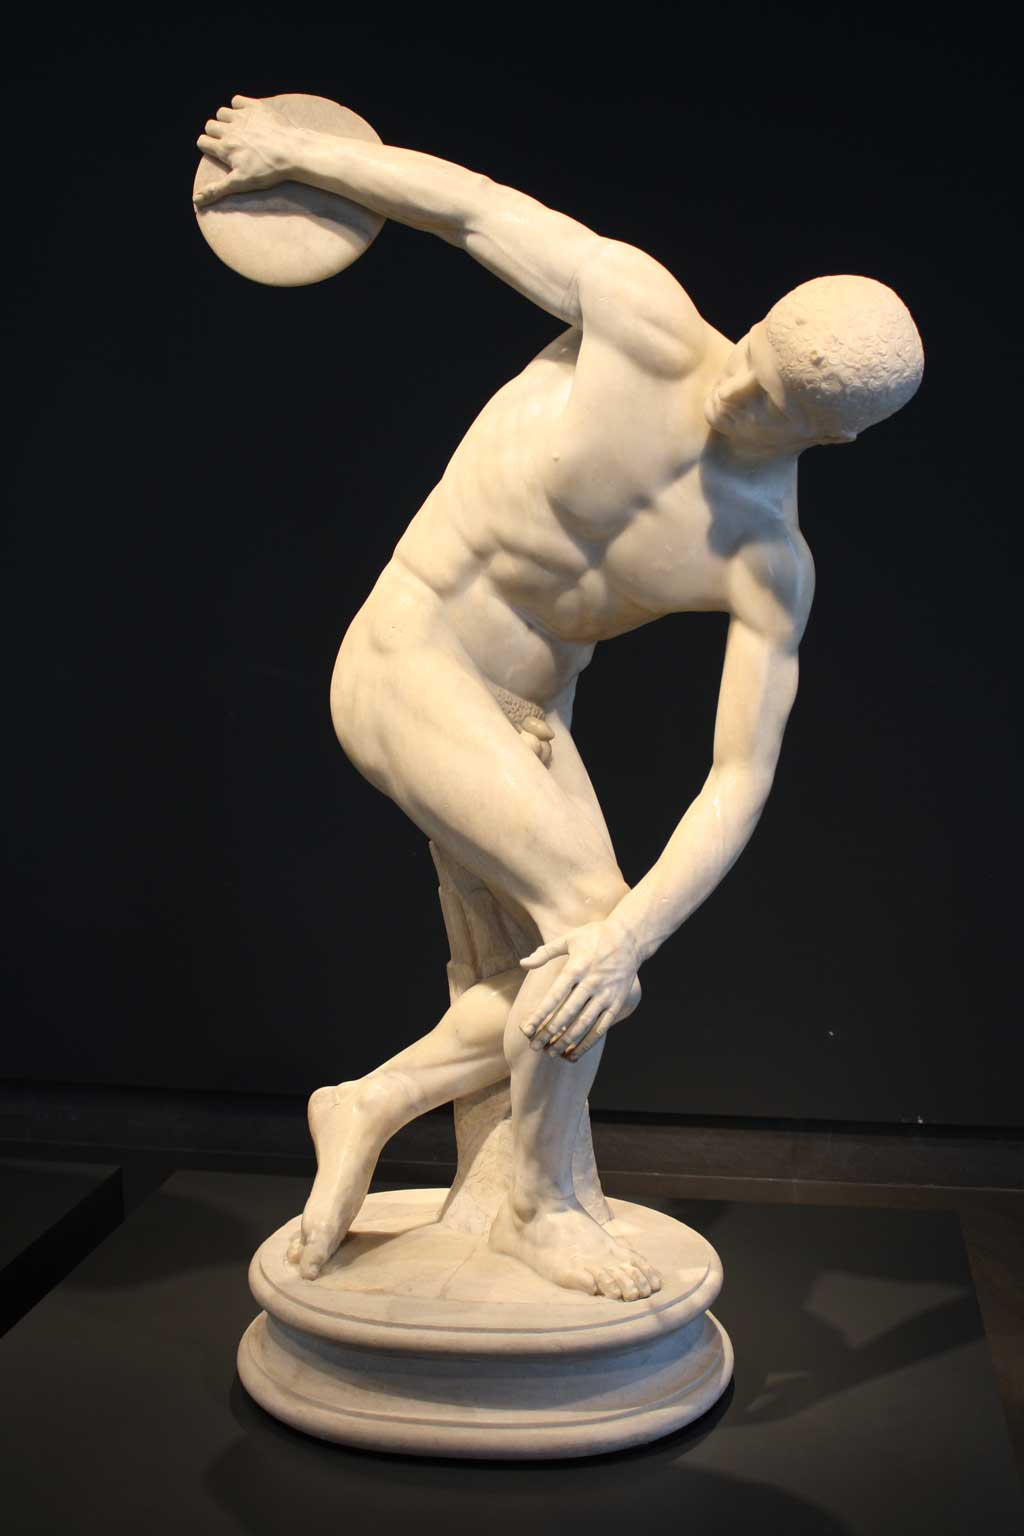 Image of the Discus Thrower. A marble replica of the original, the statue depicts a stoic-faced athlete in mid-rotation as he prepares to hurl the discus aloft.